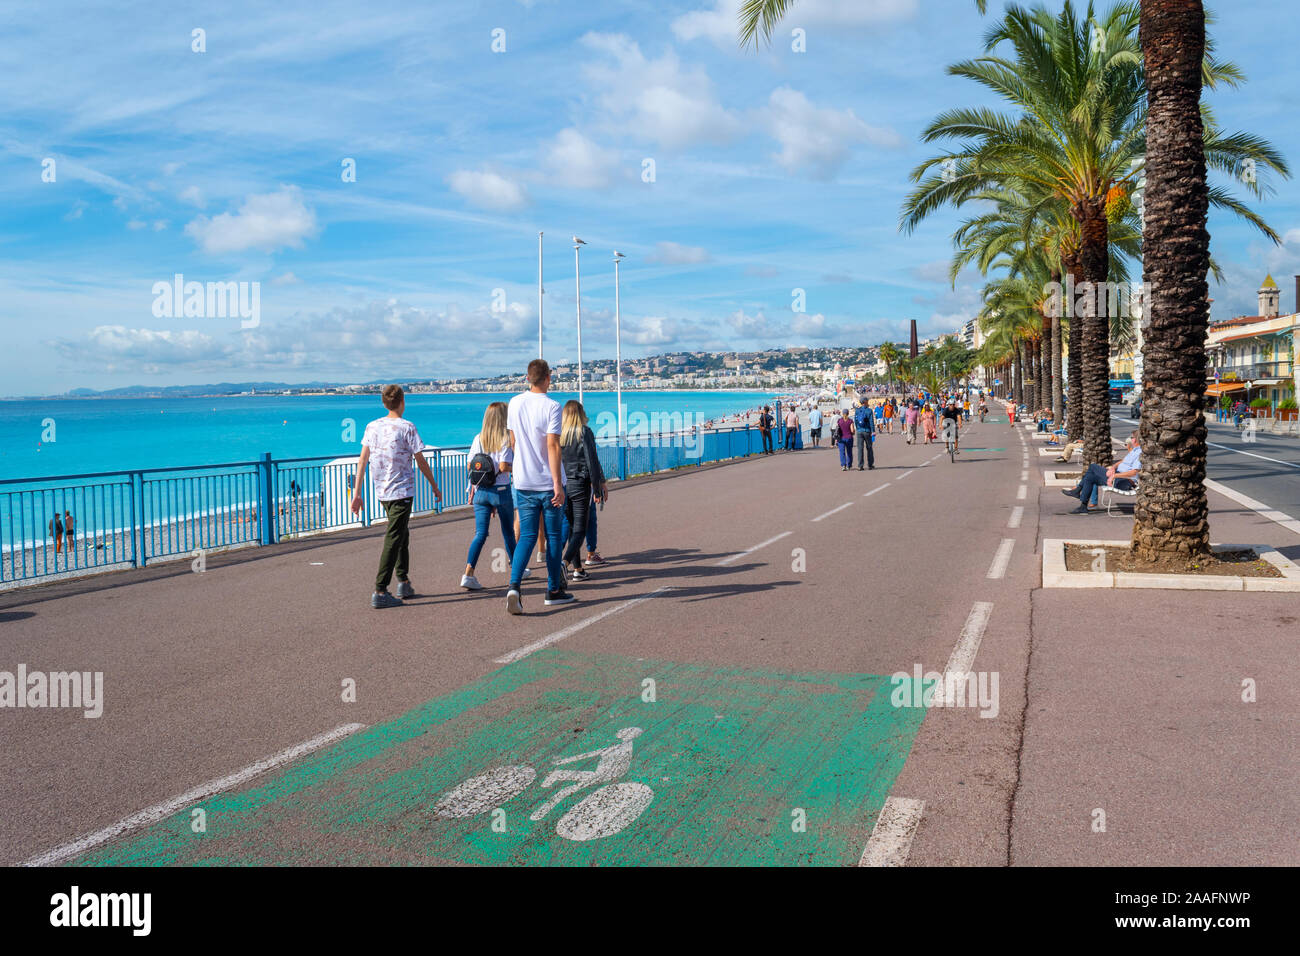 Pedestrians walk the Promenade Des Anglais on a sunny day on the French Riviera in Nice France. Stock Photo